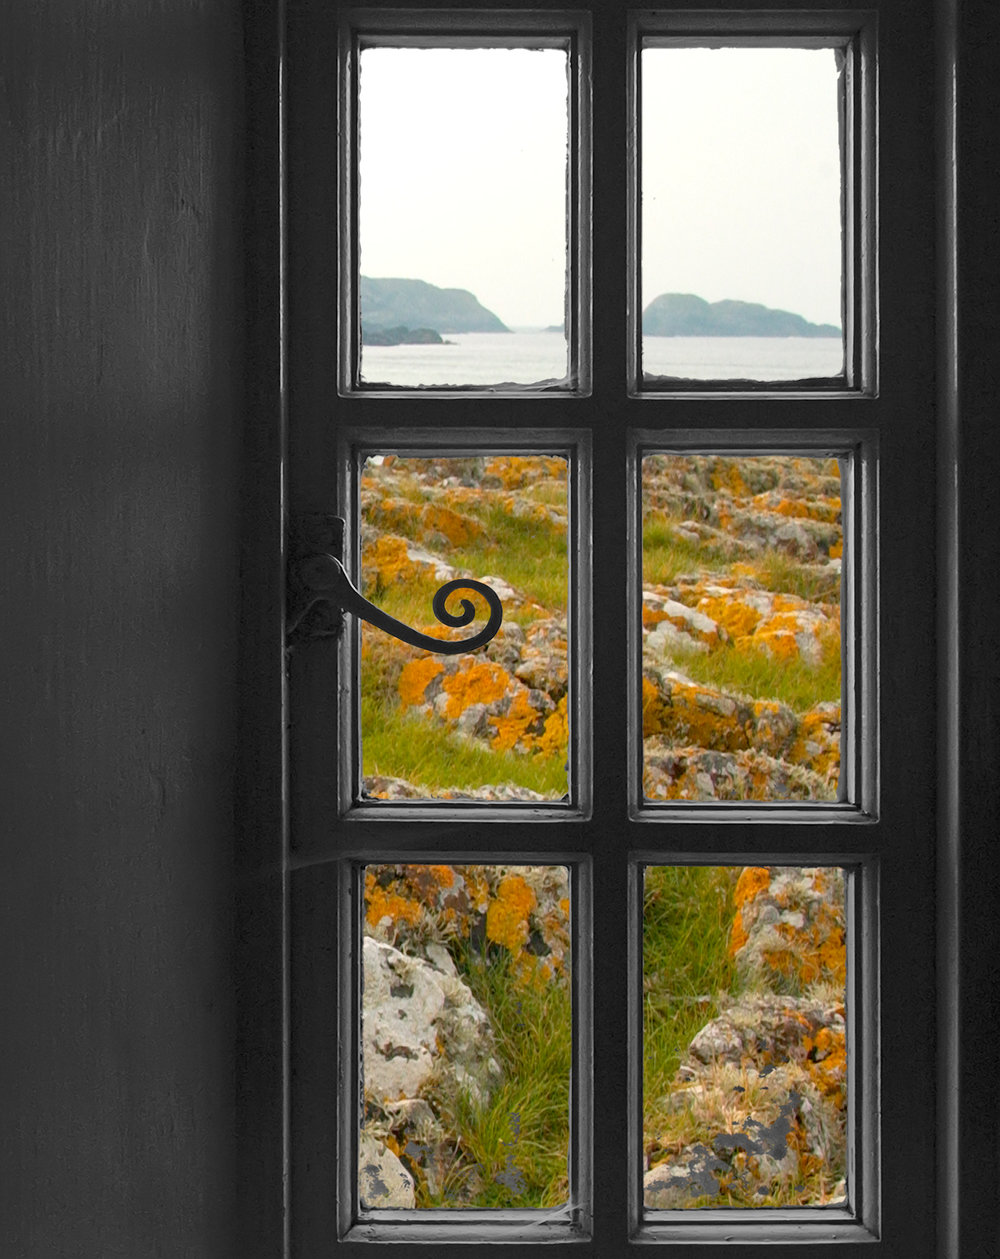 Iona window view.jpg